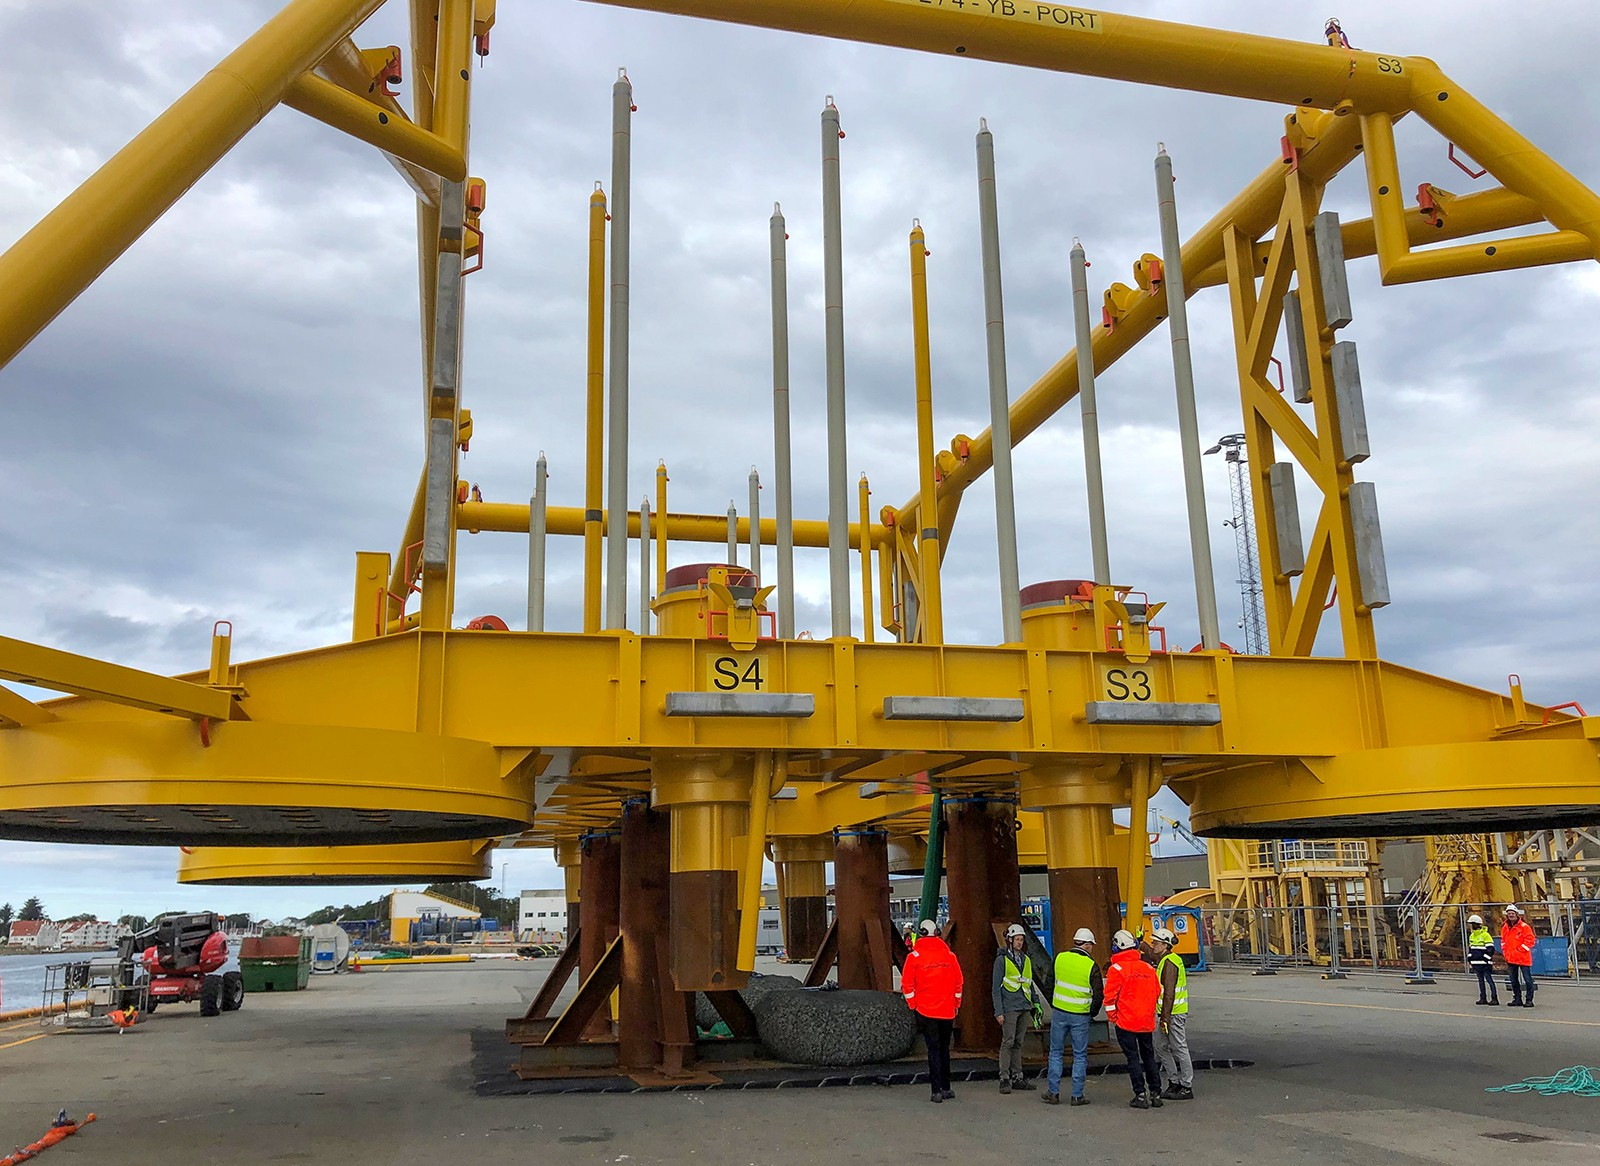 group of workers gathered in front of large yellow metal structure